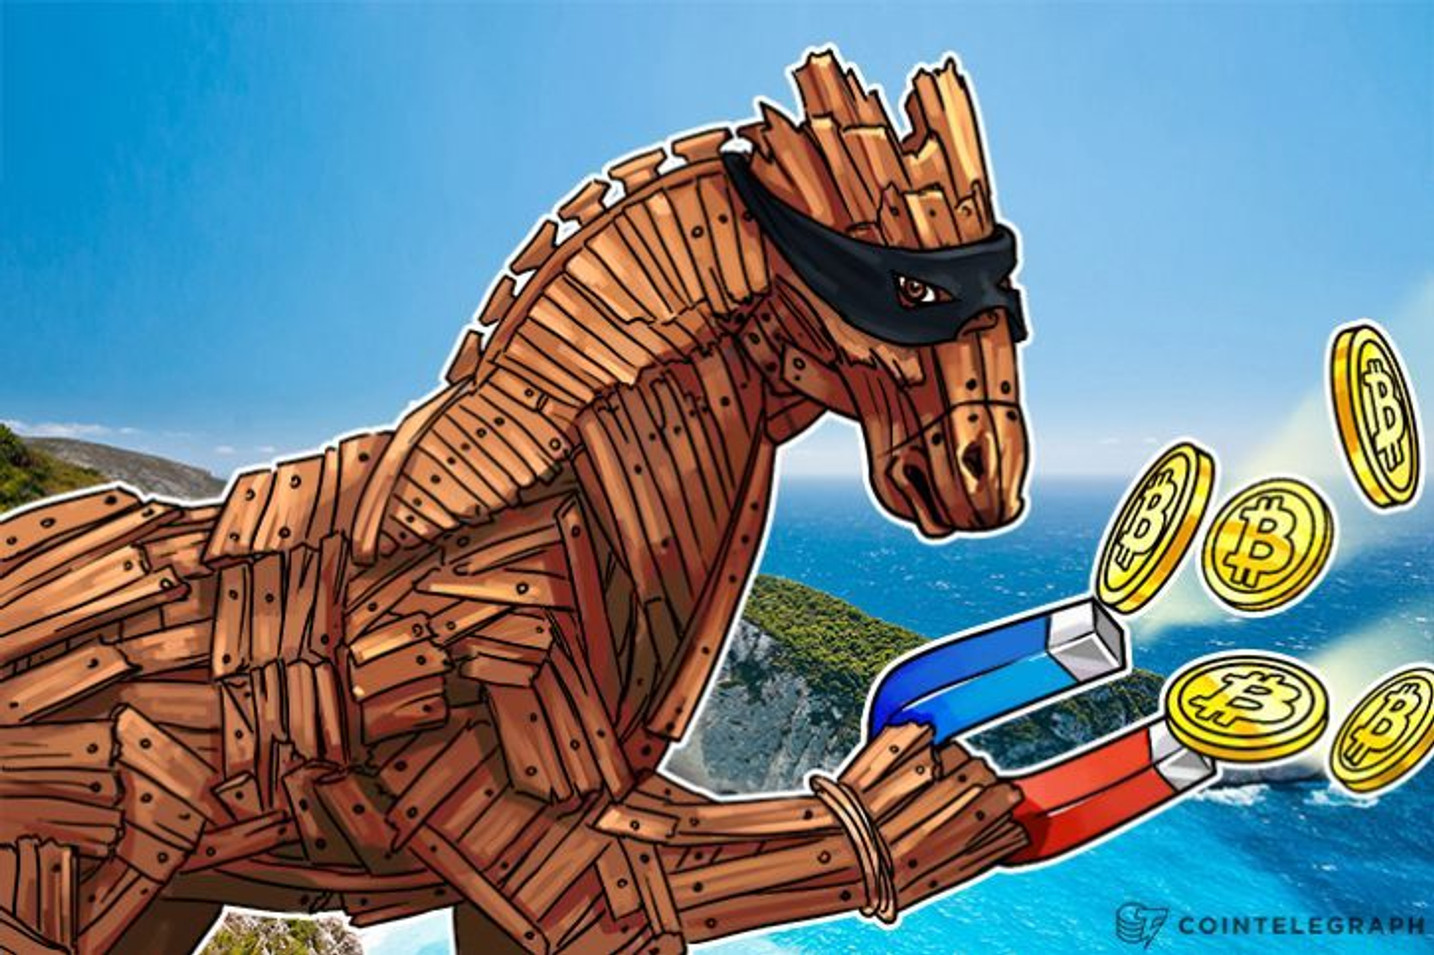 'Can't Tolerate This': TREZOR Ditches BitPay Over SegWit2x 'Games'